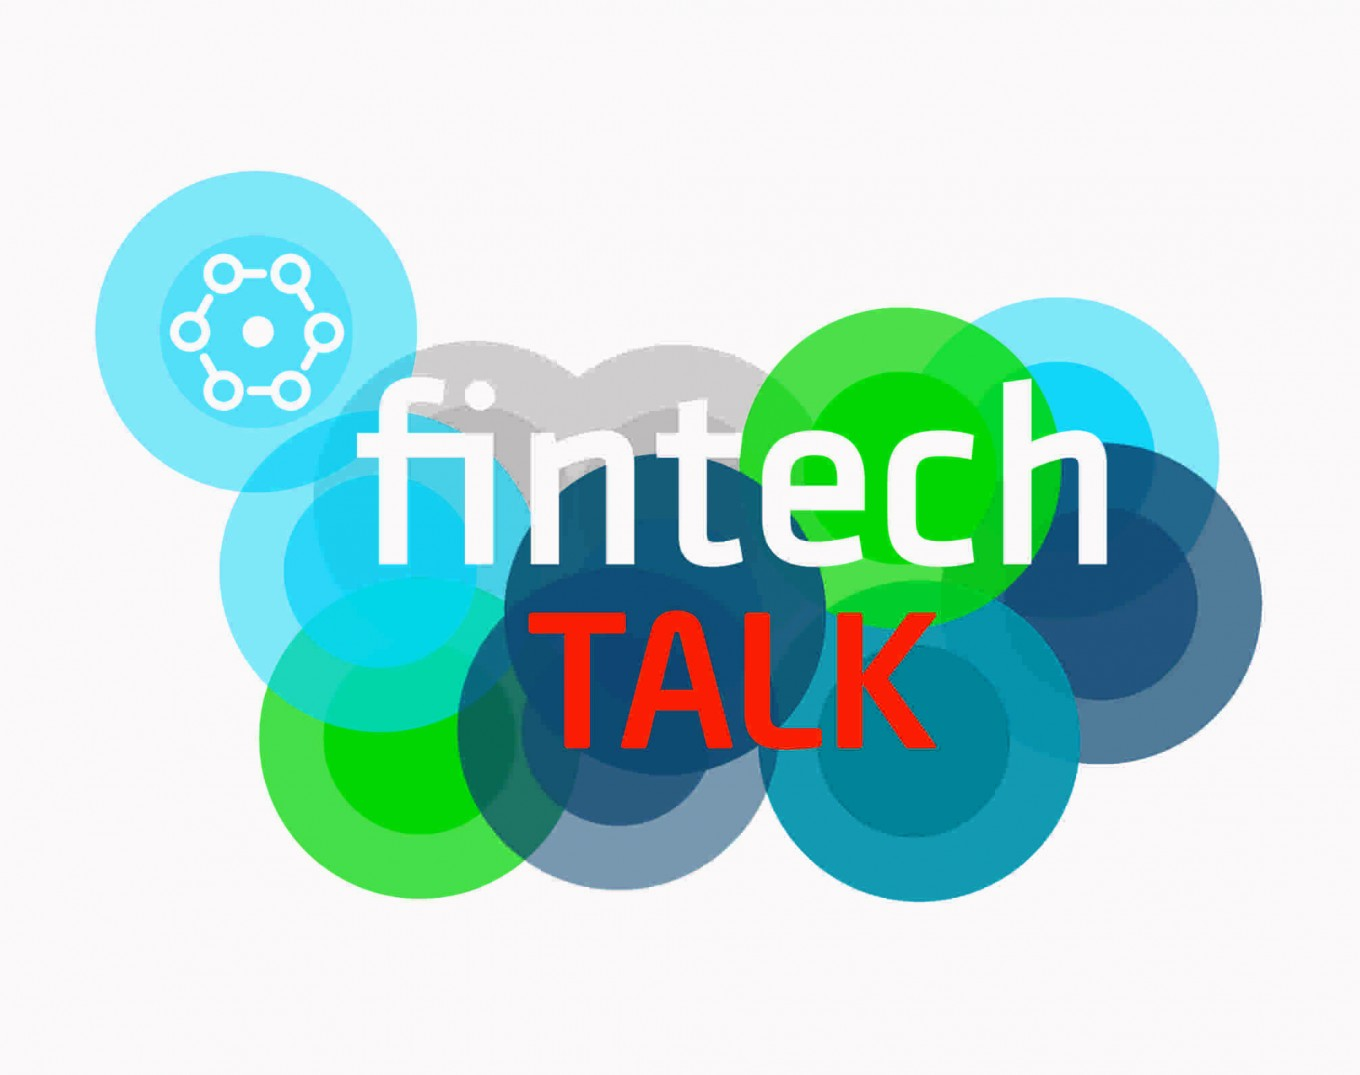 Bank-fintech synergy crucial to speed up financial inclusion